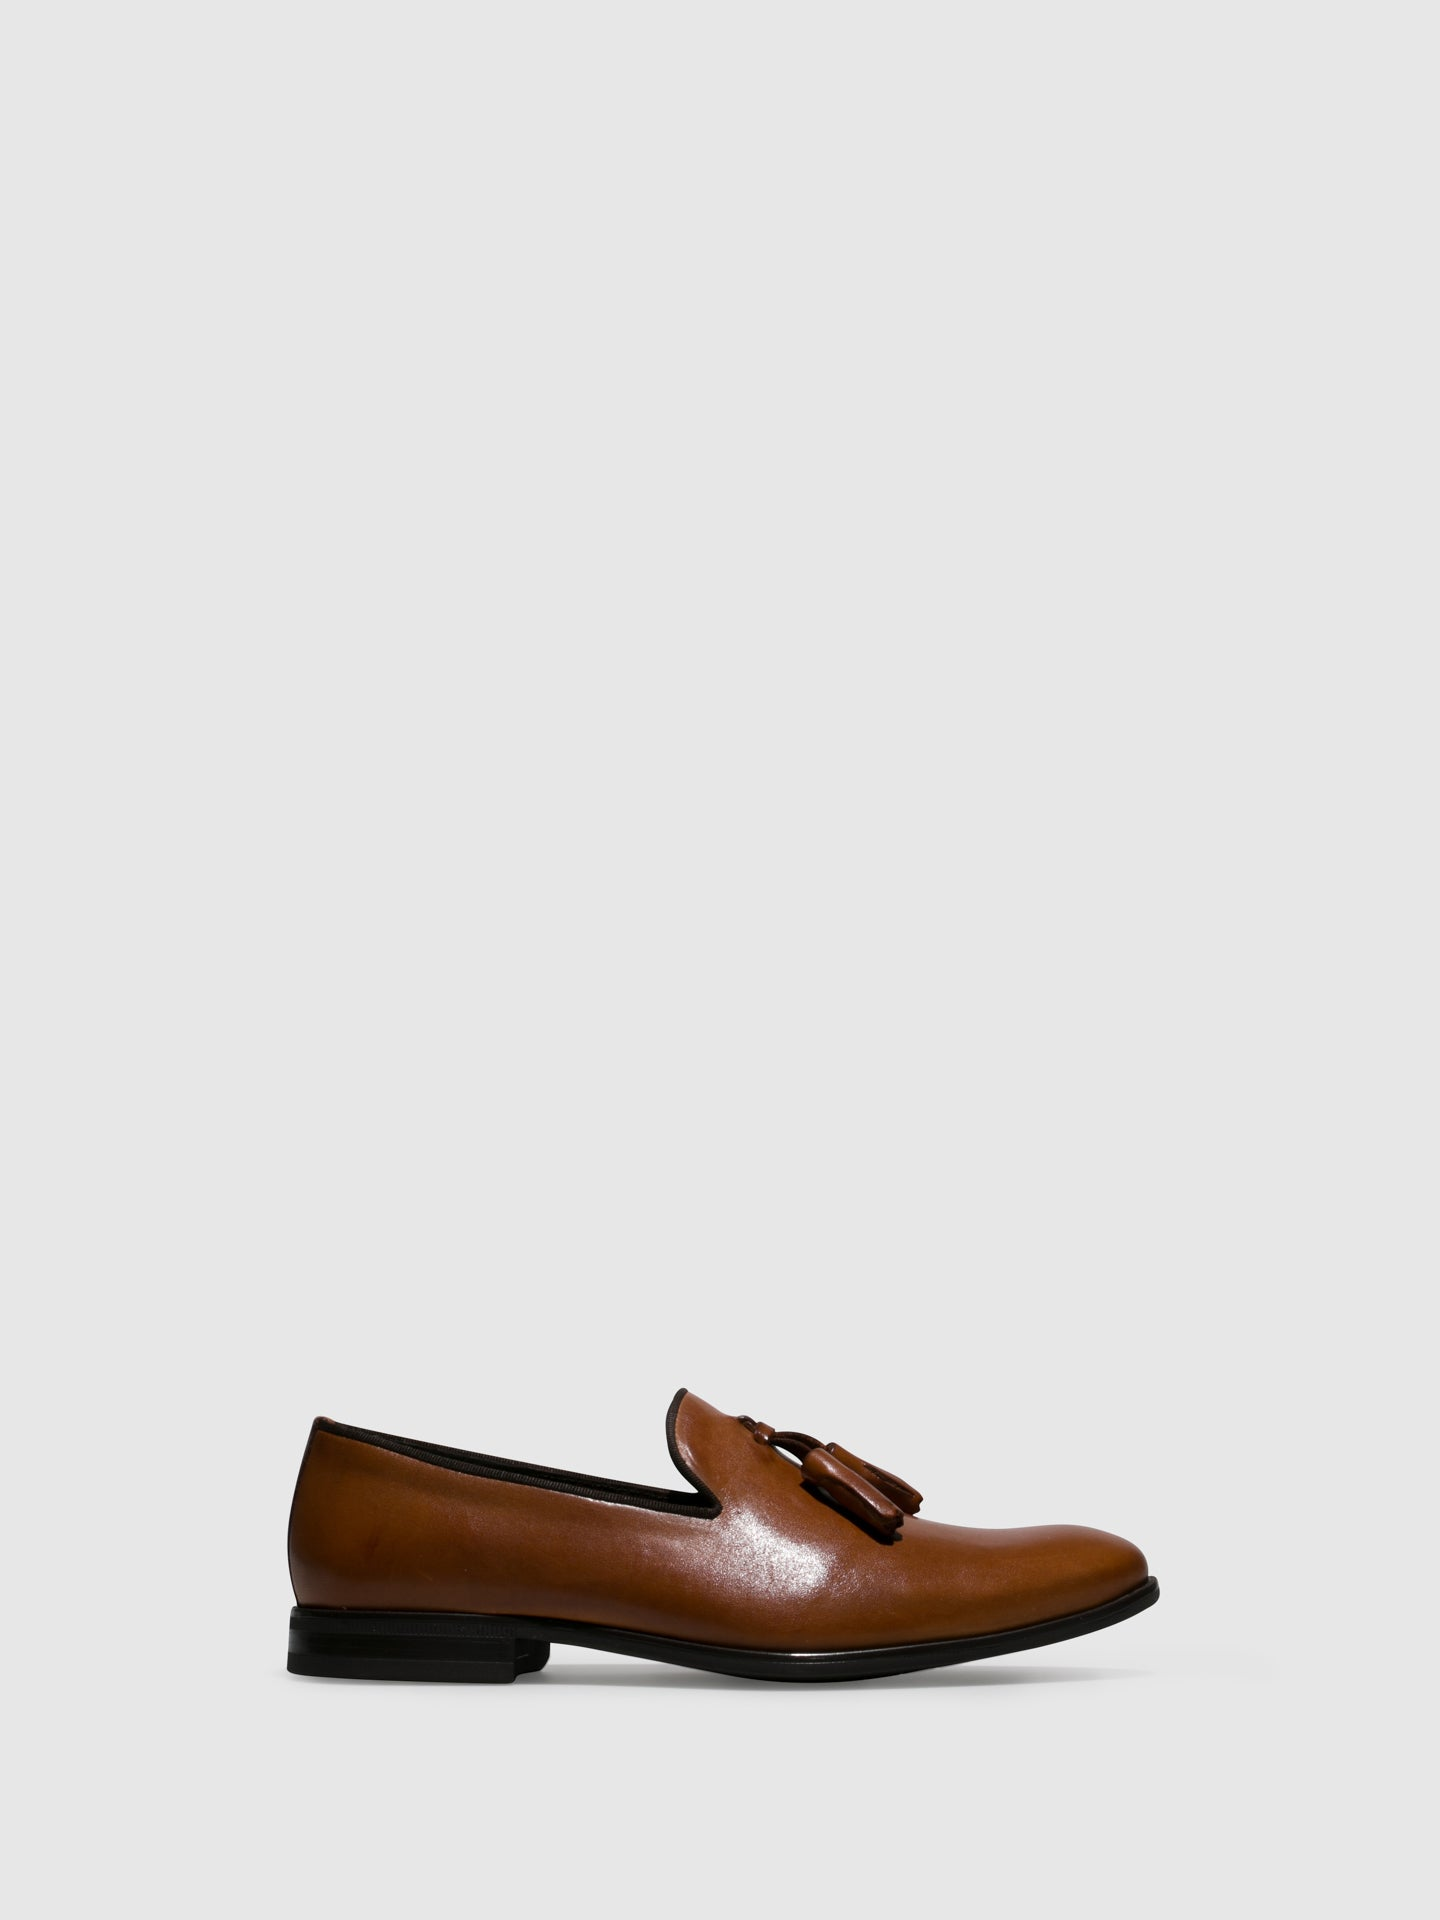 Foreva Brown Slip-on Shoes